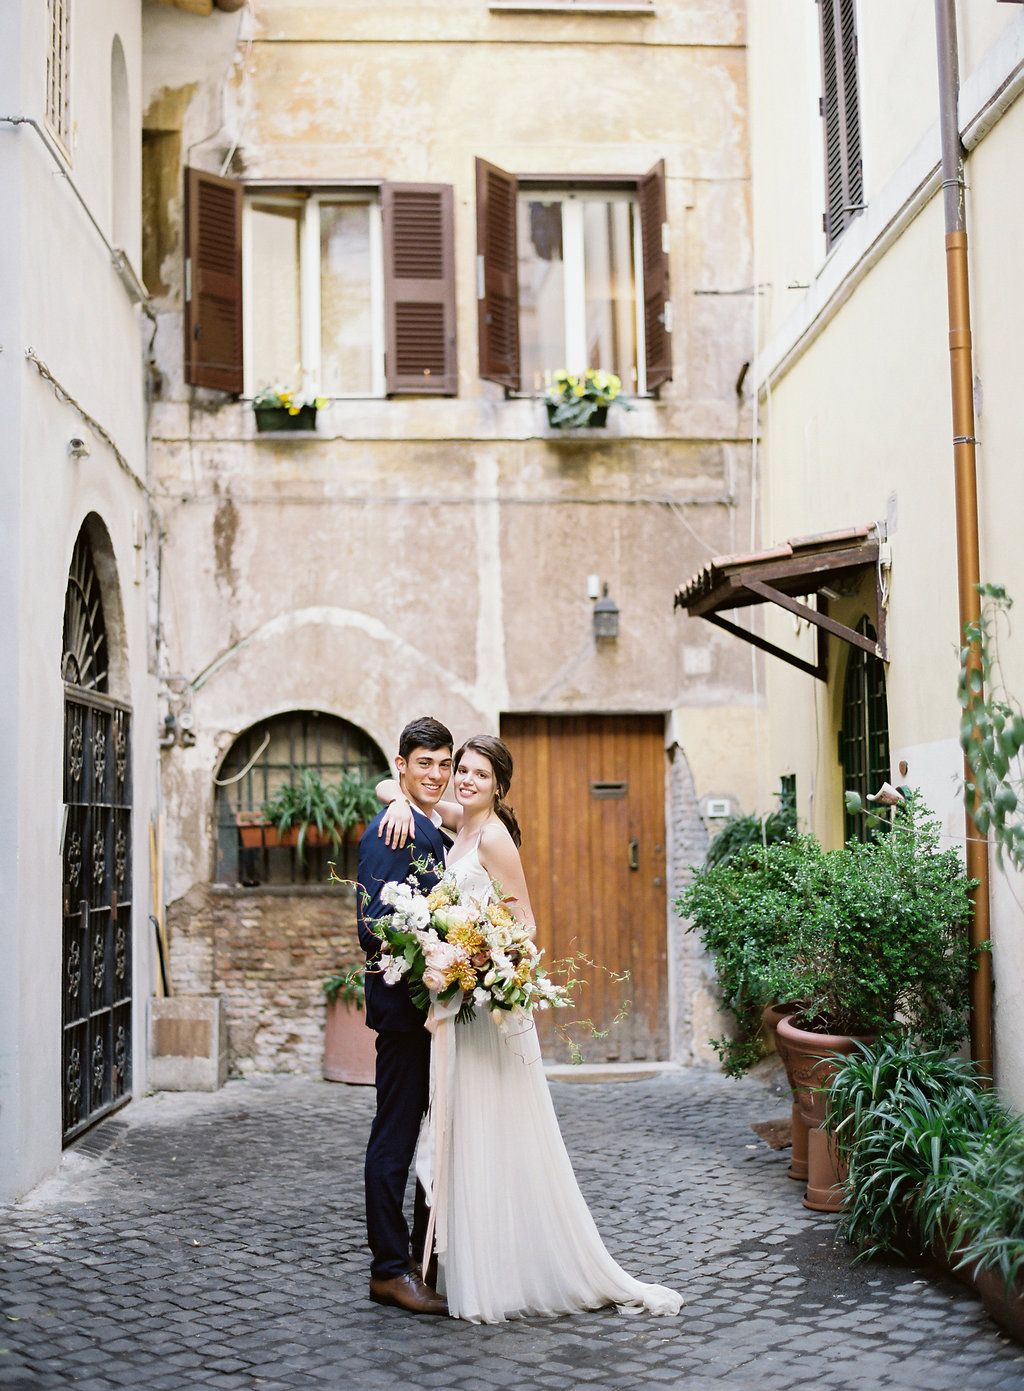 Vicki_Grafton_Photography_Rome_Italy_Wedding_Photographer_2017-138.jpg